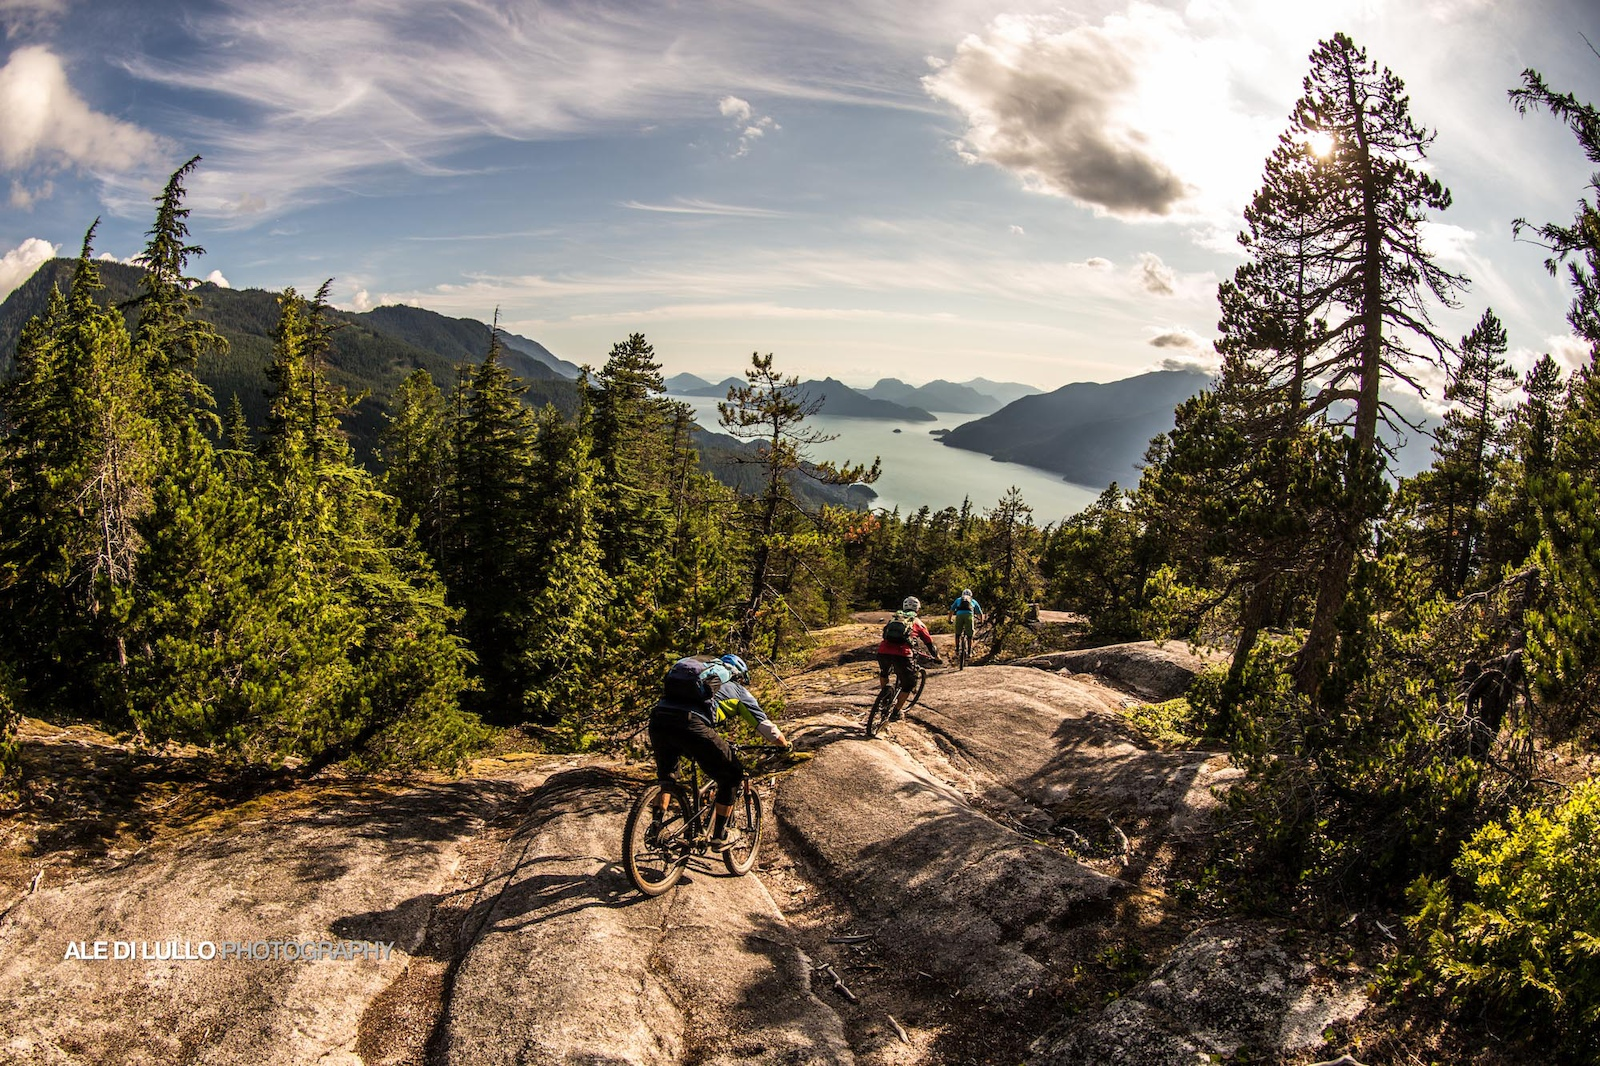 Who needs Moab when you can ride the pristine loam of BC straight into a natural granite skate park.